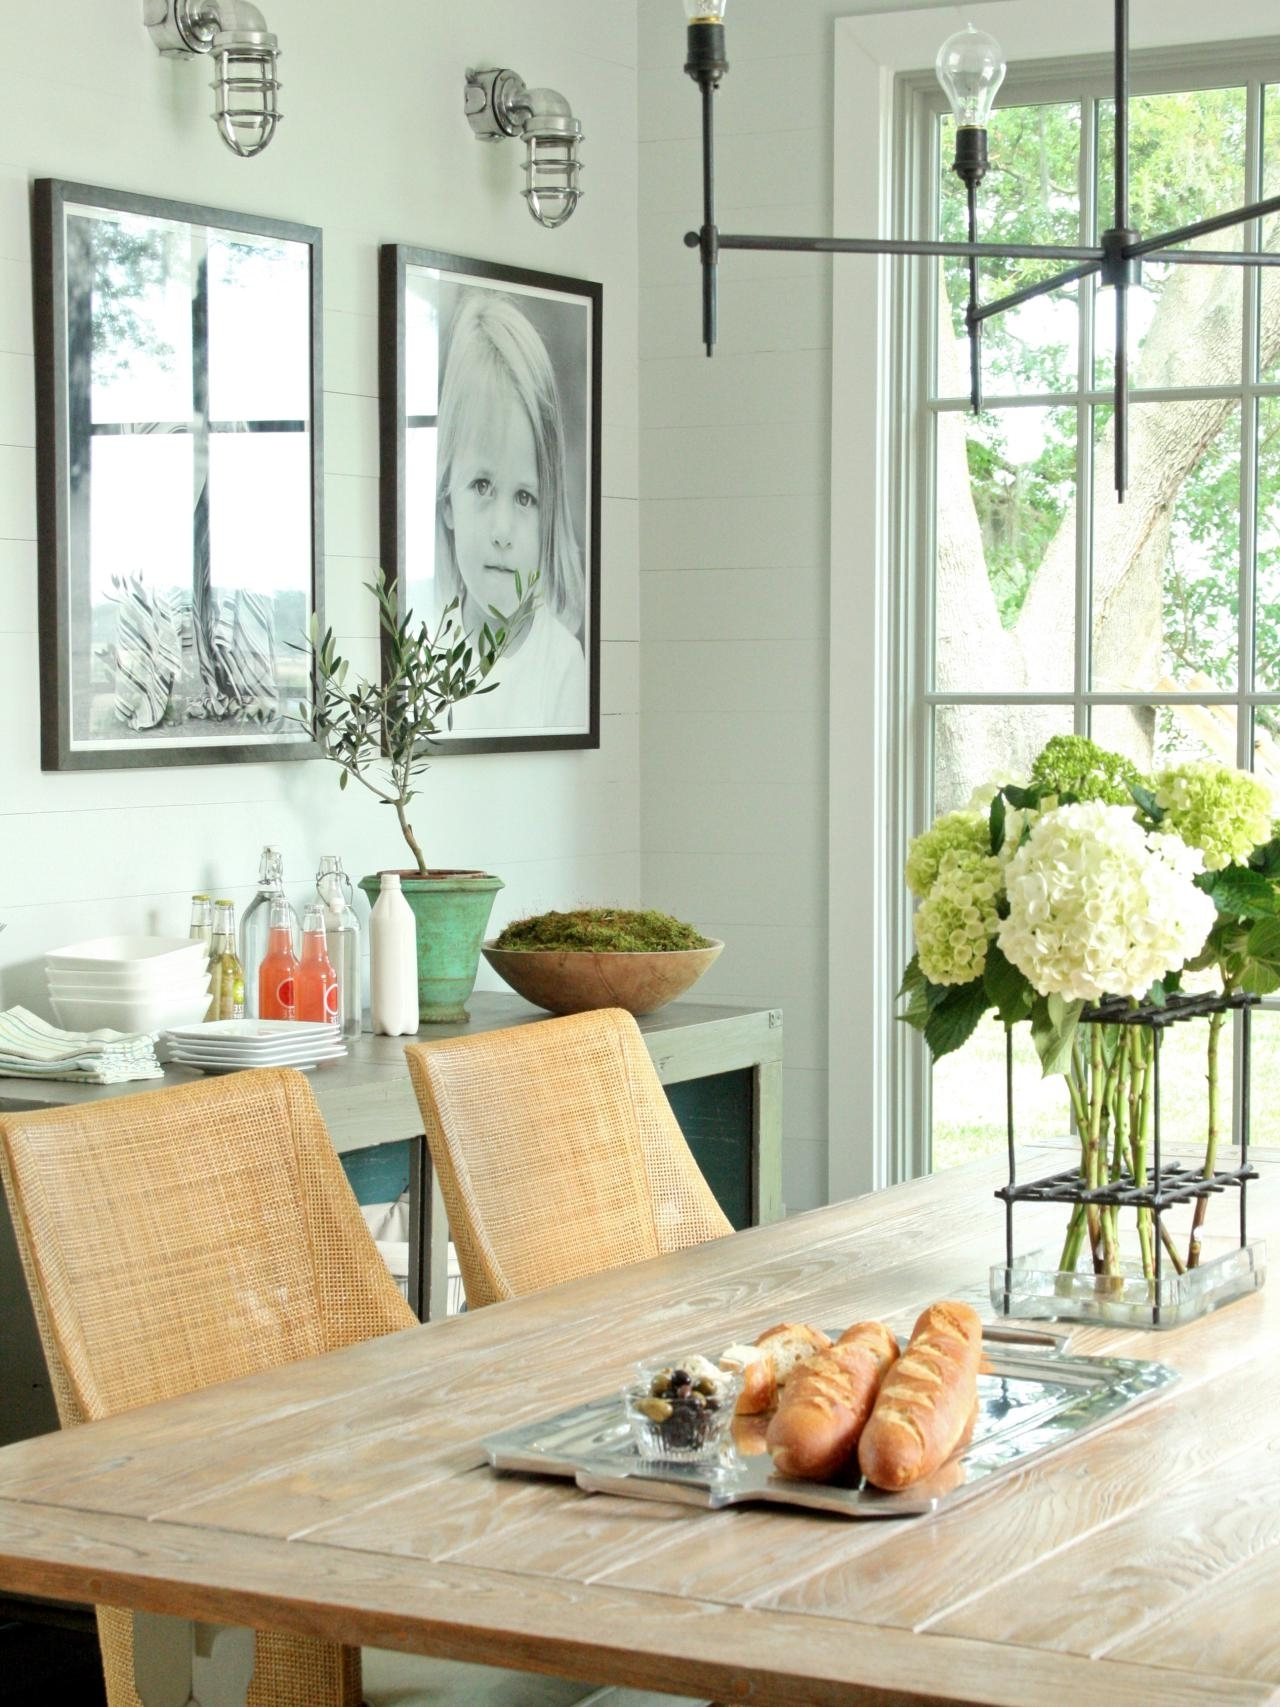 Hgtv's Decorating Pertaining To Preferred Wall Art For Dining Room (View 7 of 15)